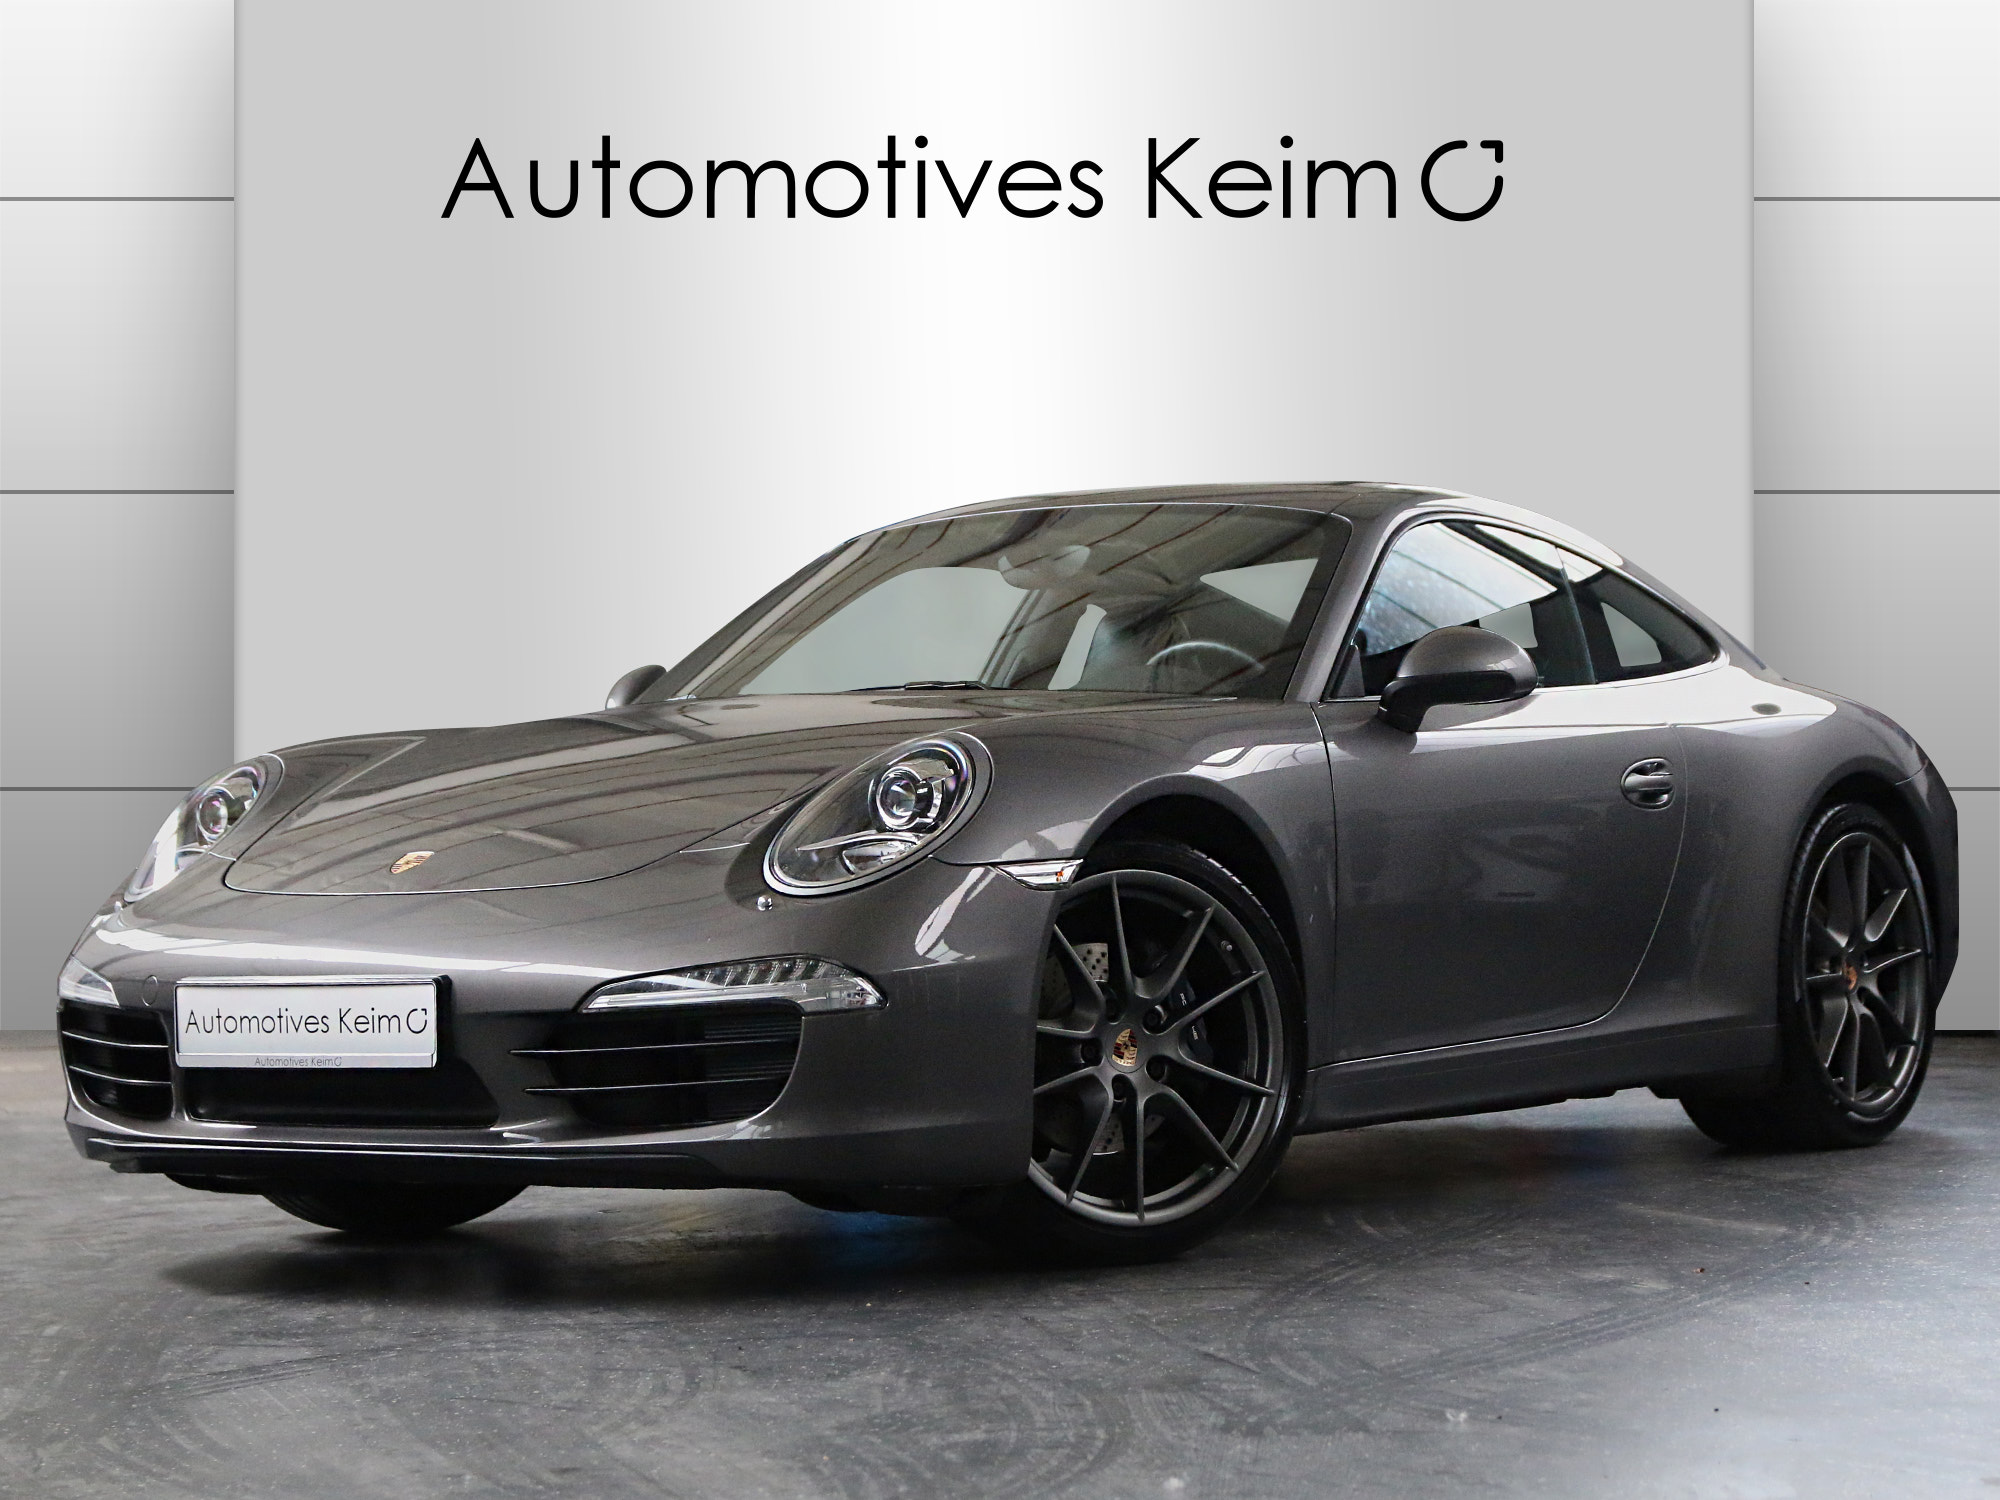 PORSCHE 911 991 COUPE Automotives Keim GmbH 63500 Seligenstadt Www.automotives Keim.de Oliver Keim 000246